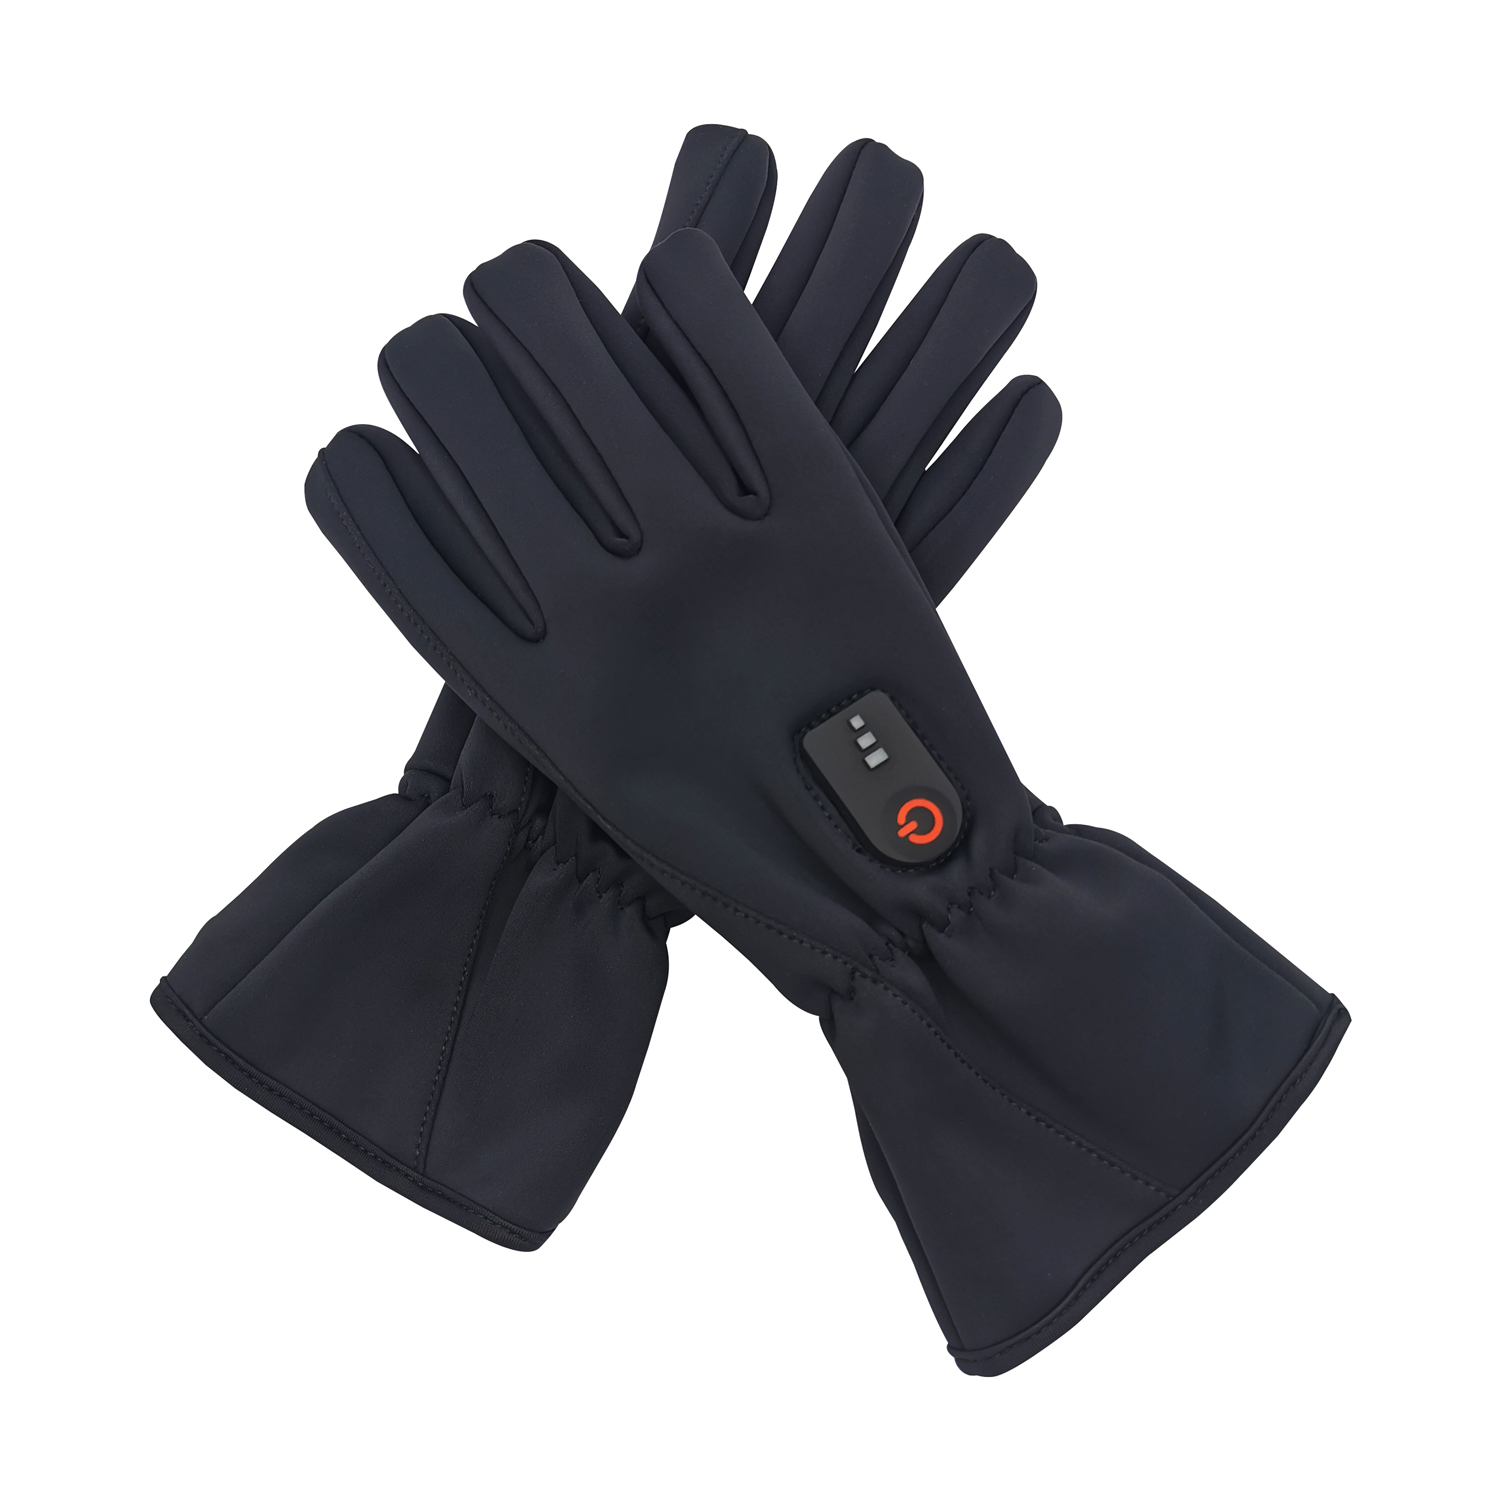 Dr. Warm gloves heated winter gloves for outdoor-2